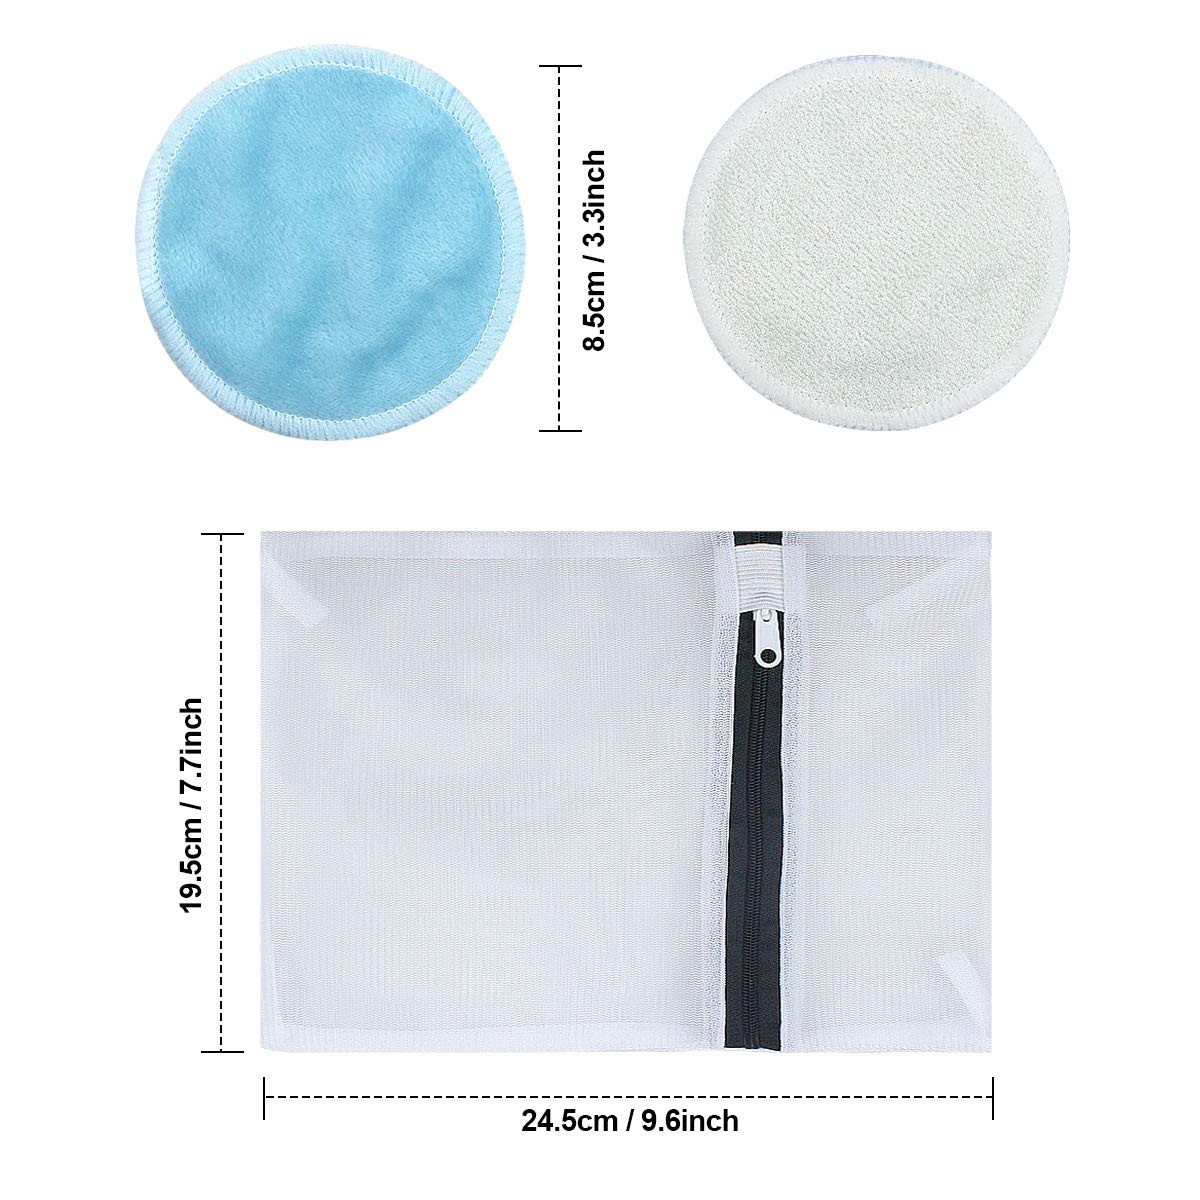 3.3 inch Washable Bamboo Cotton Pads Soft Cleansing Wipe Cloth Pads for Face Eye Makeup Clean 20pcs Reusable Makeup Remover Pads with Drawstring Laundry Mesh Bag